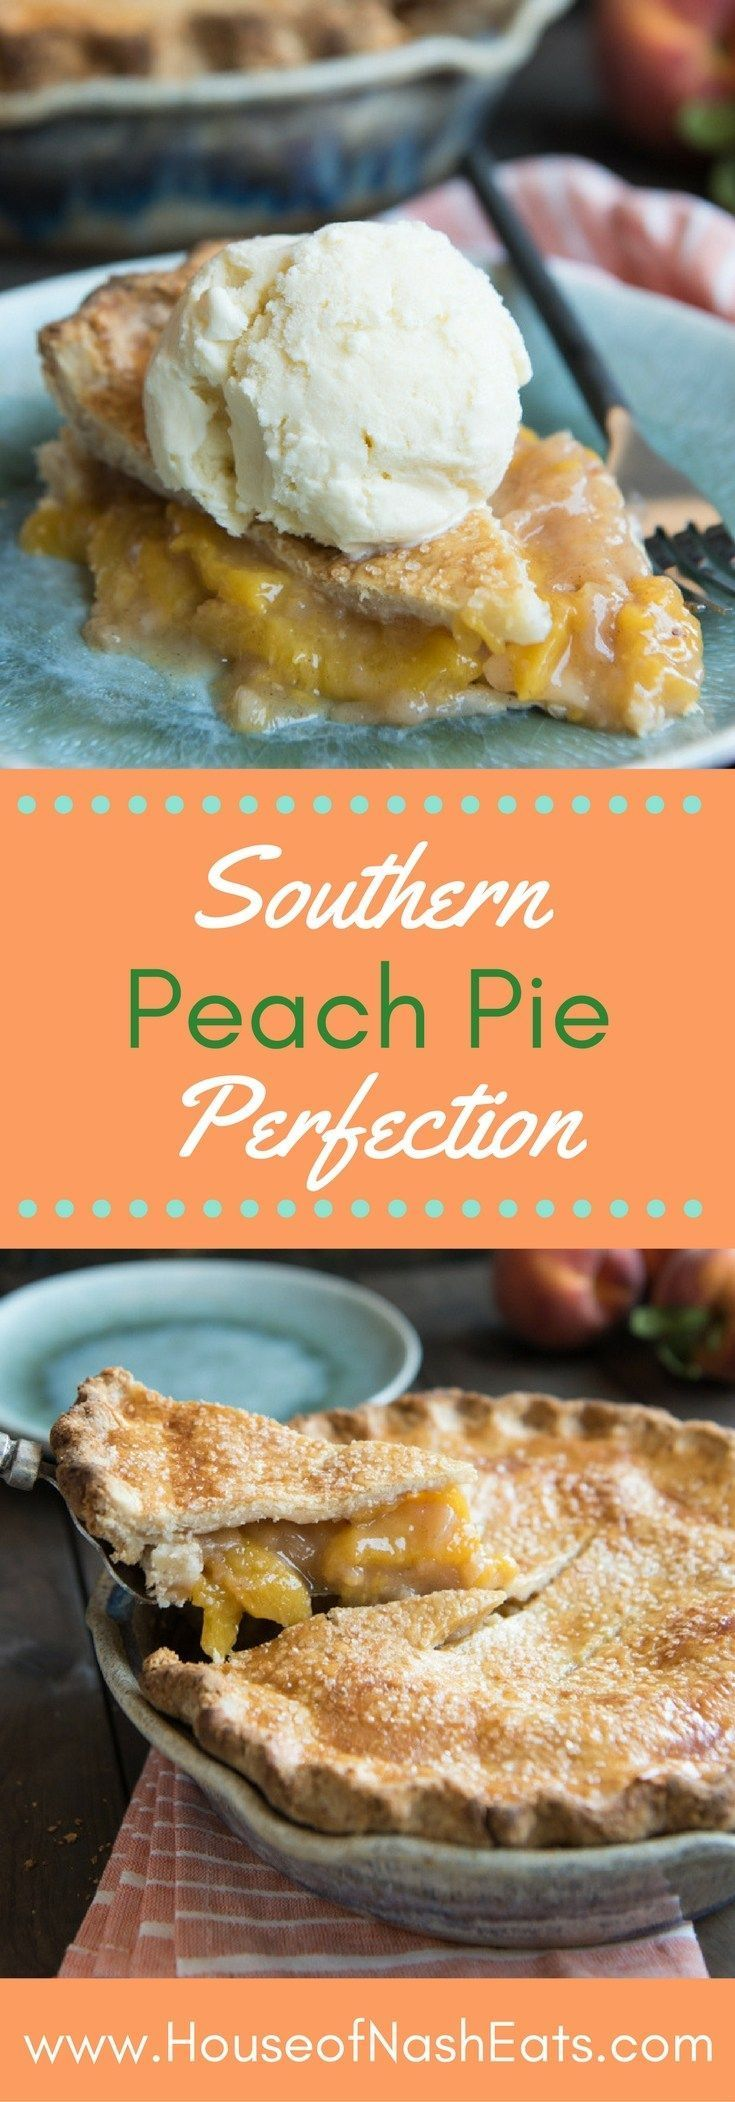 Pie Perfection This classic, Southern Peach Pie is absolute dessert perfection! Filled with summer's juiciest, sweetest fresh peaches and made with a flaky, buttery double-crust dusted with sanding sugar, it's as beautiful a pie as it is delicious and wonderful served à la mode with a big scoop of vanilla ice cream!This cl...